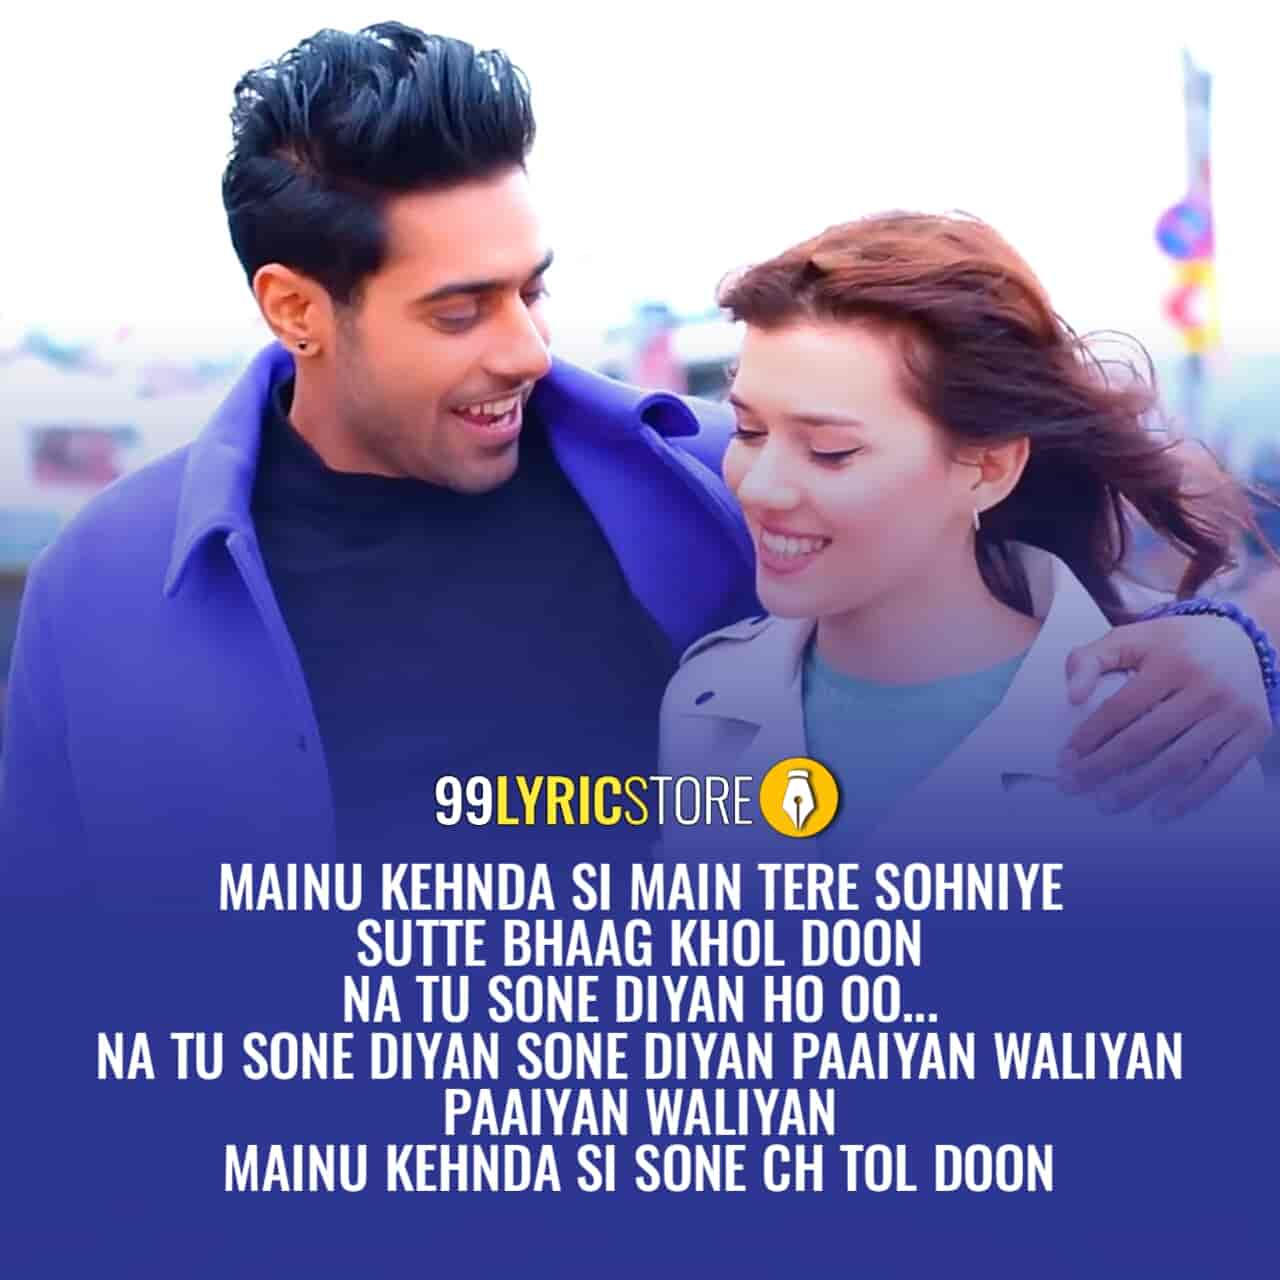 Sone Diya Waliyan Lyrics Images Guri